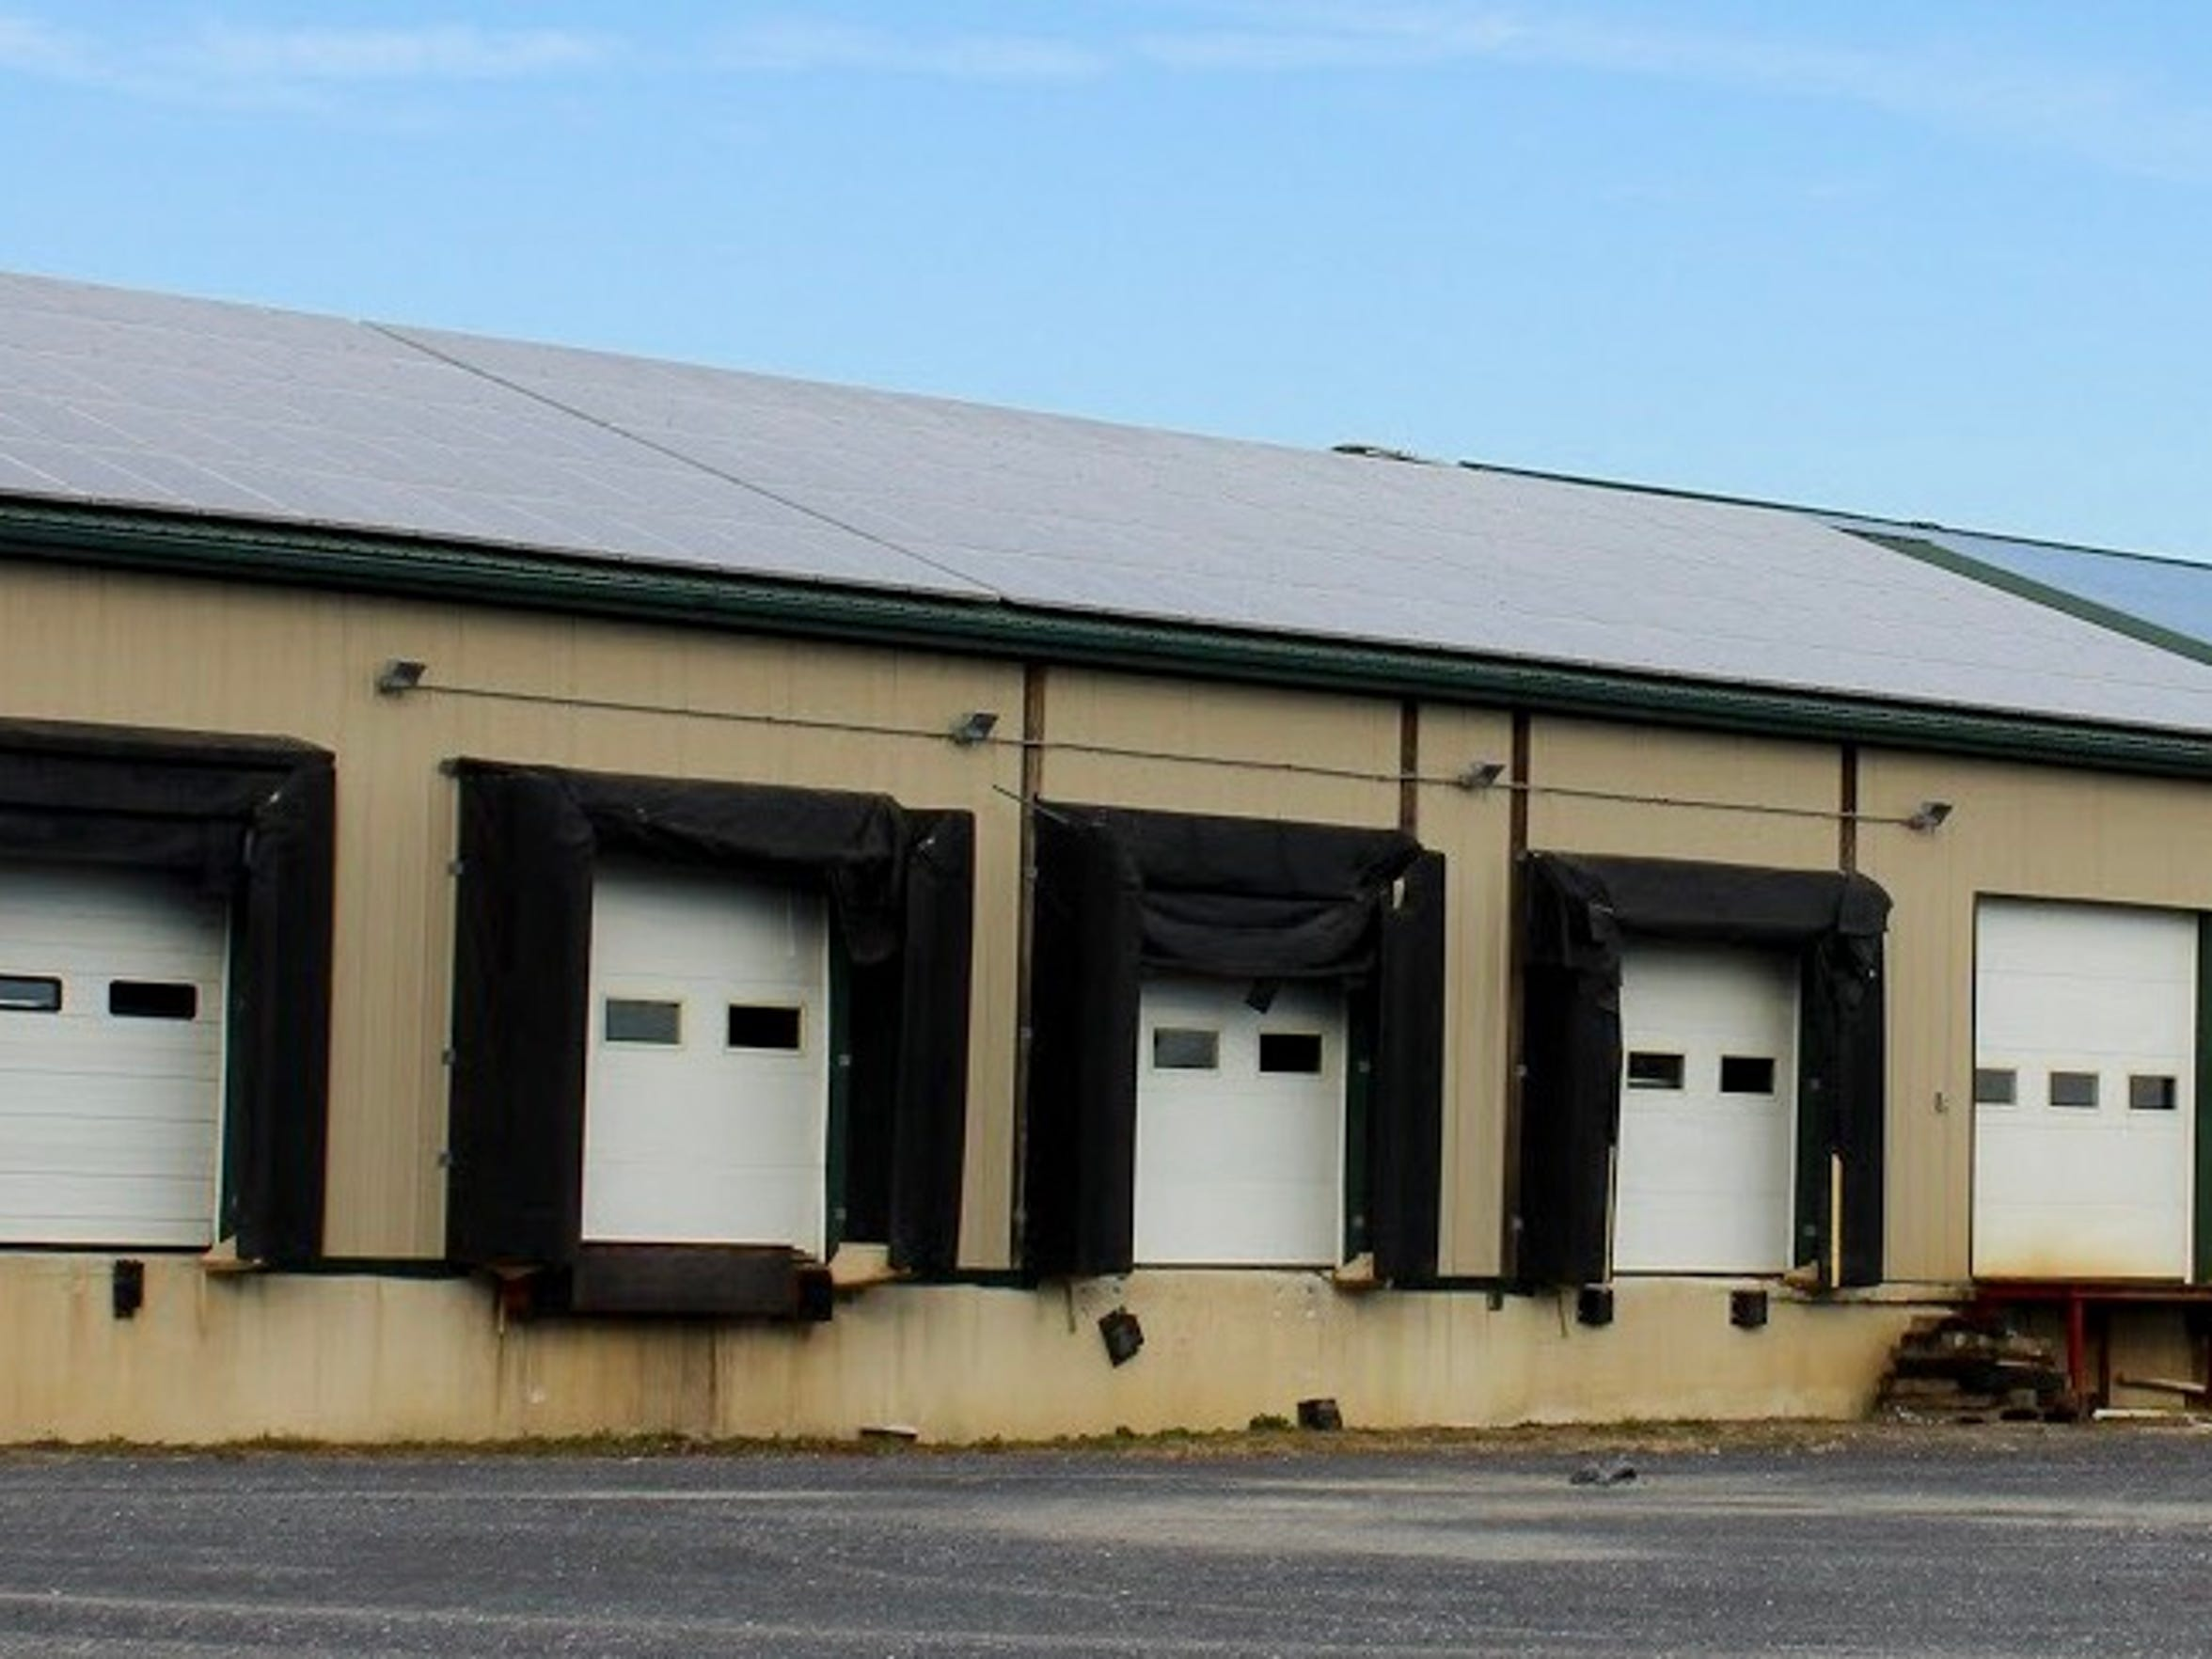 Lady Moon Farms installed solar panels on its Chambersburg farm's 20,000 square-foot packinghouse in 2010. Vice President Anais Beddard said the company made the decision to go solar to help address the effects of climate change.